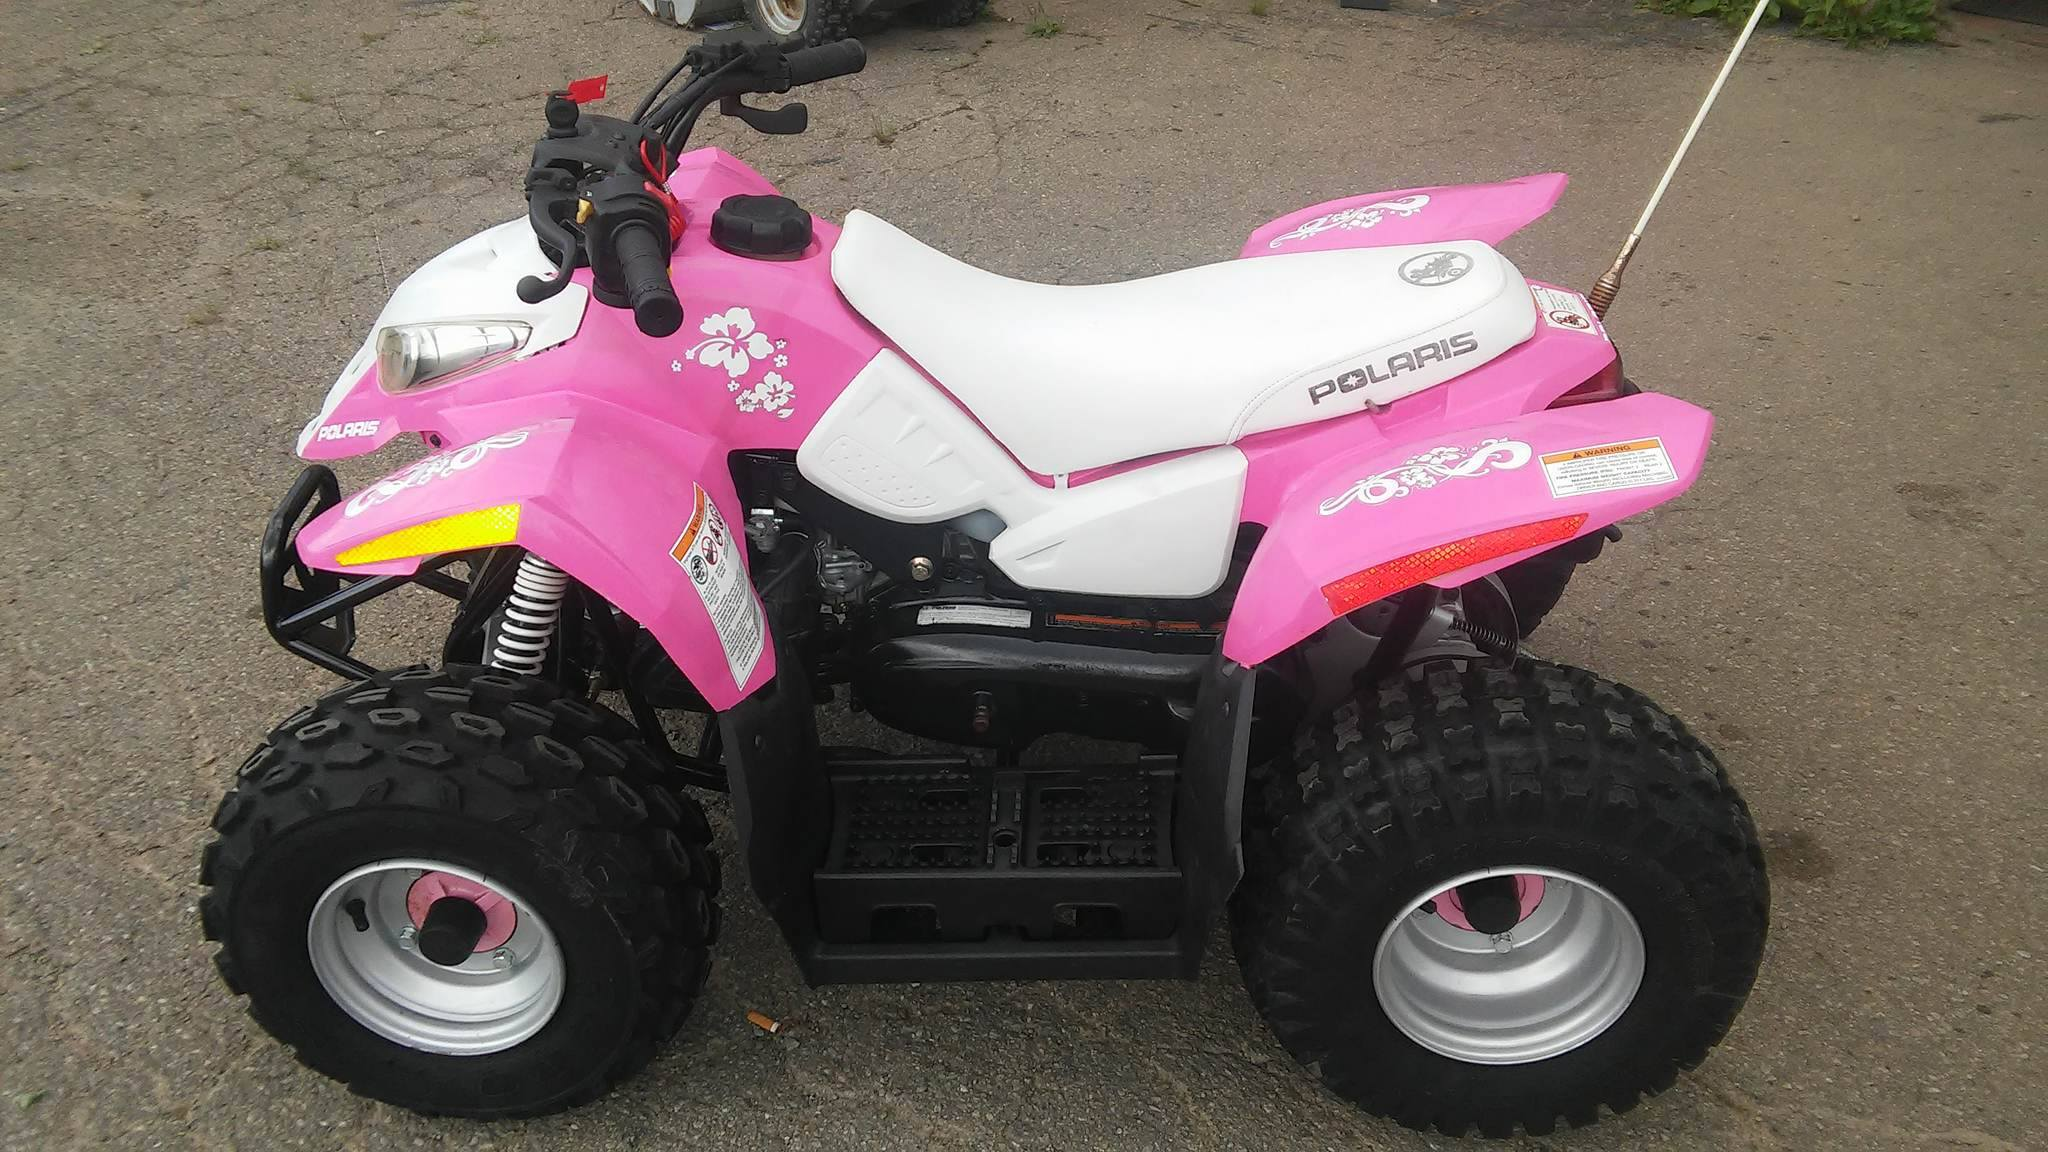 Polaris Outlaw 50 >> 2006 Polaris Outlaw 50 $1395.00 - Polaris ATV Forum